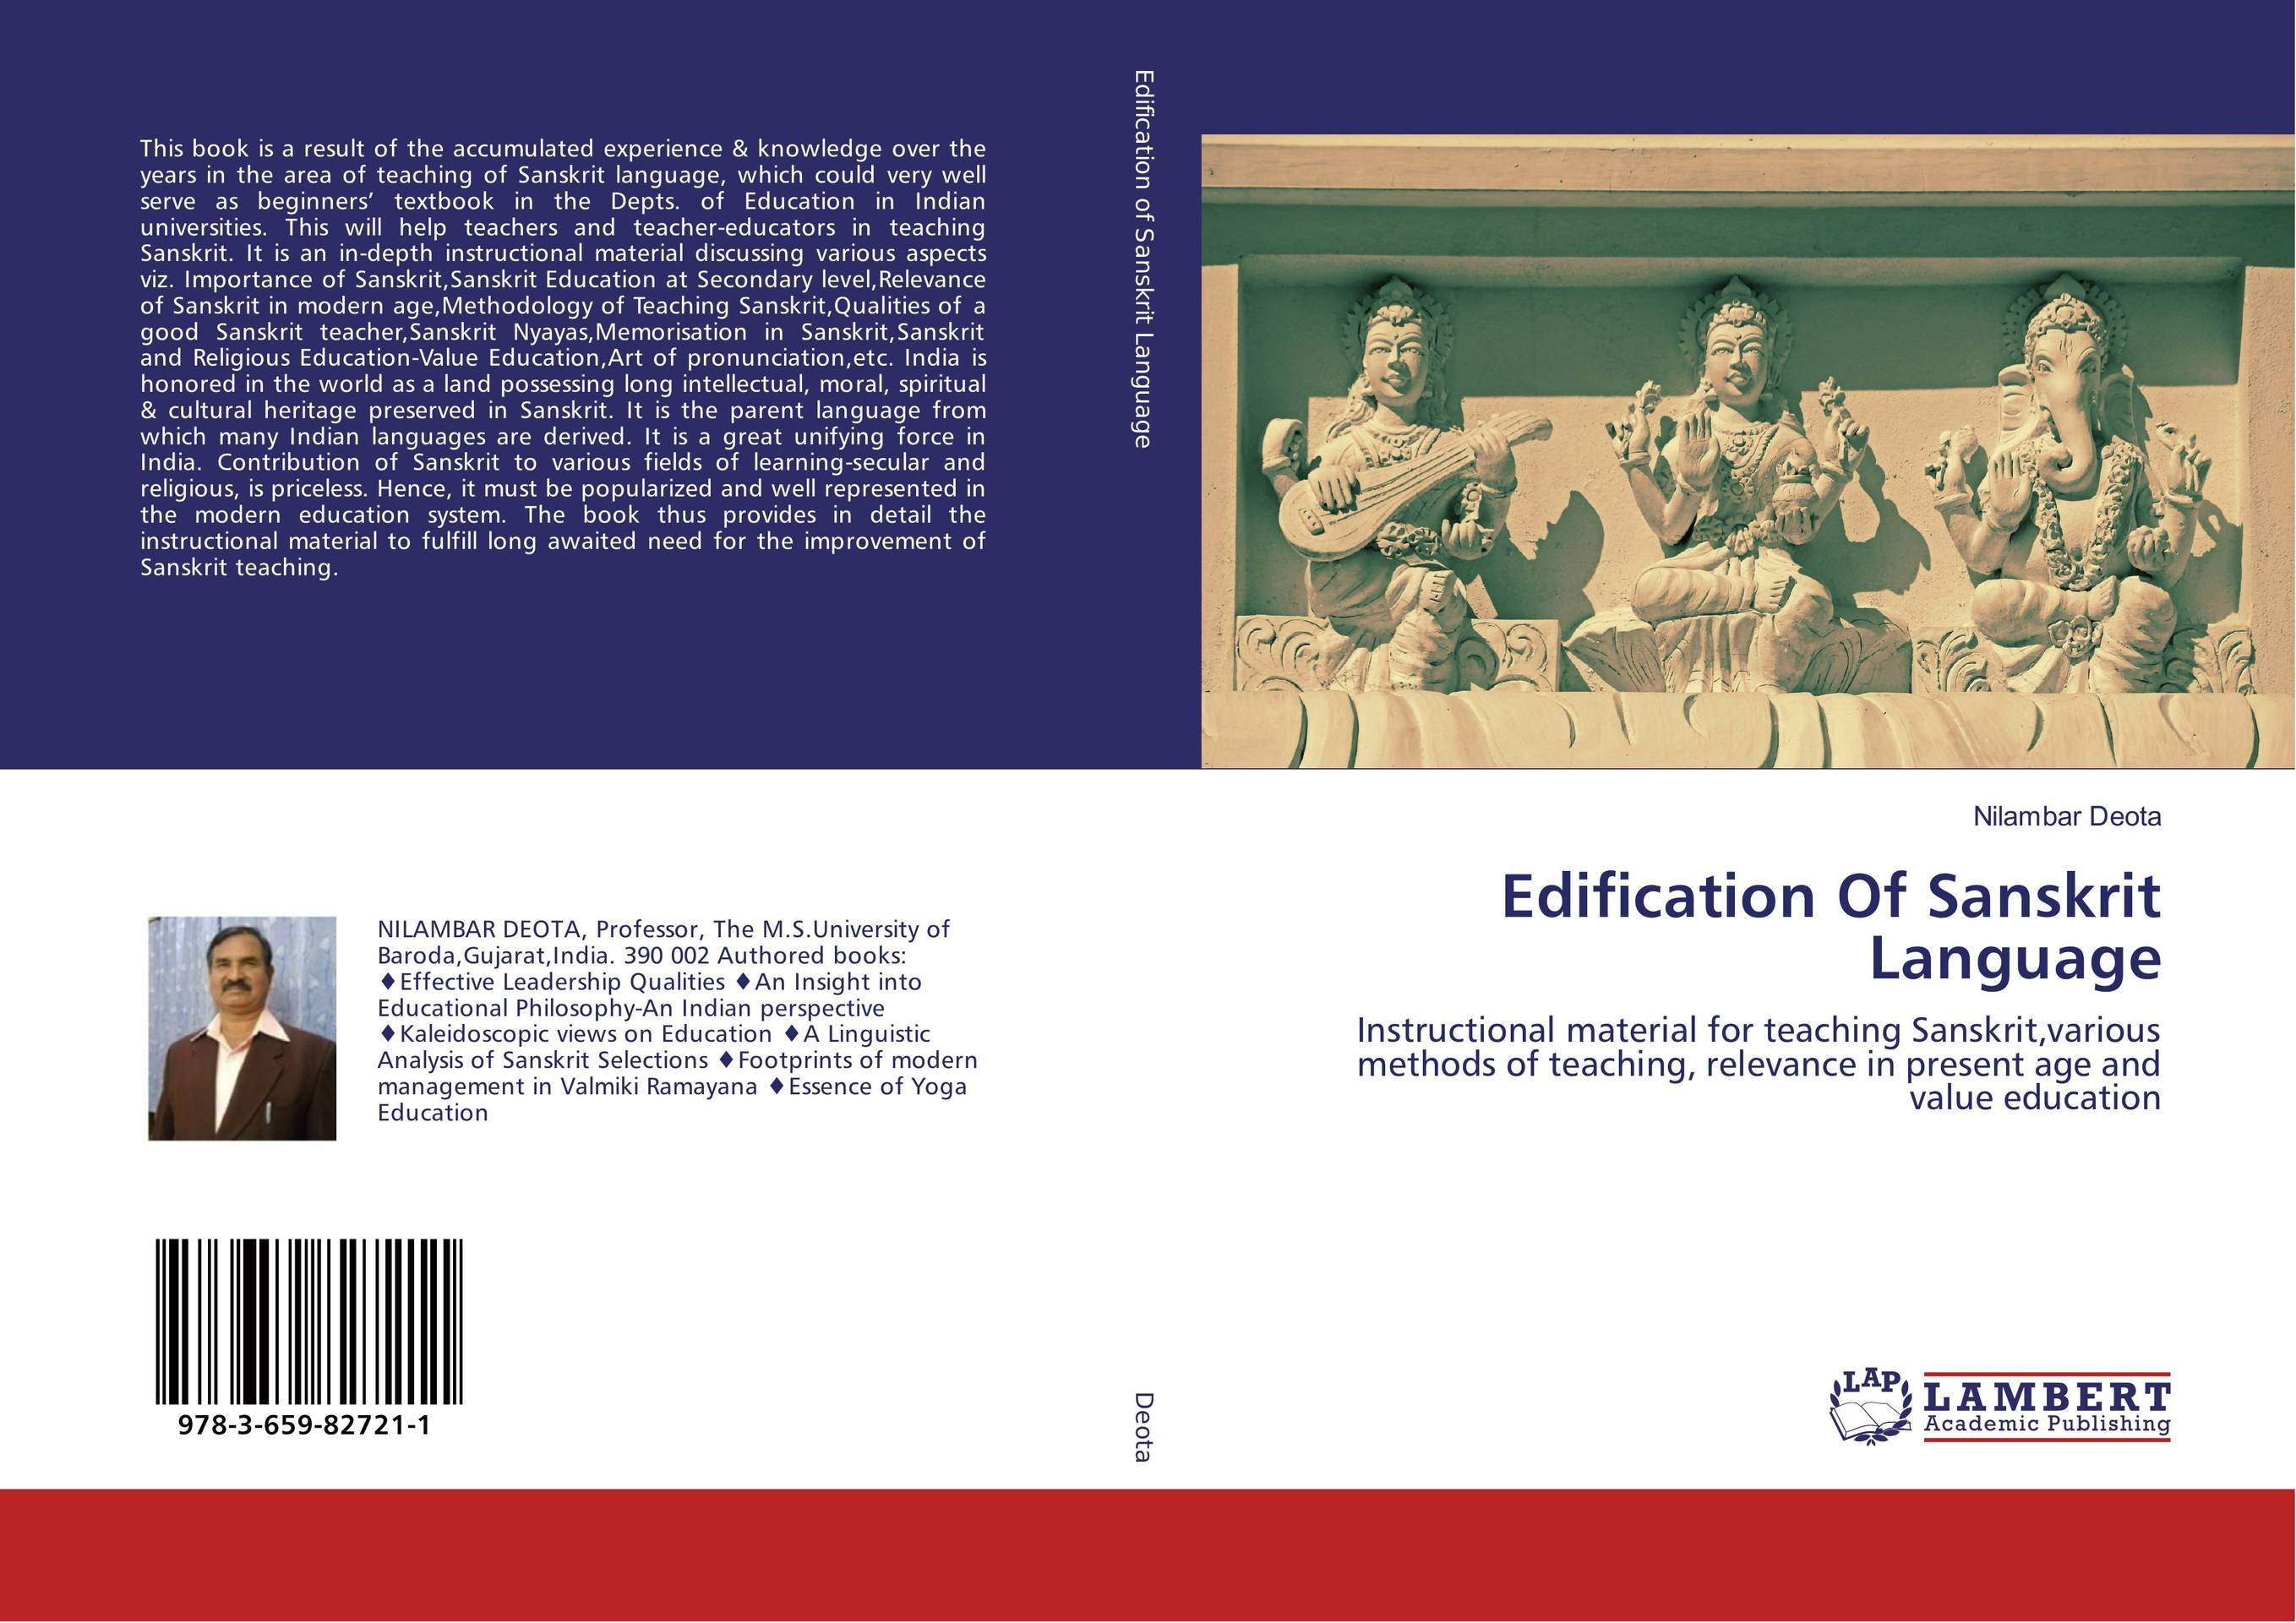 Edification Of Sanskrit Language